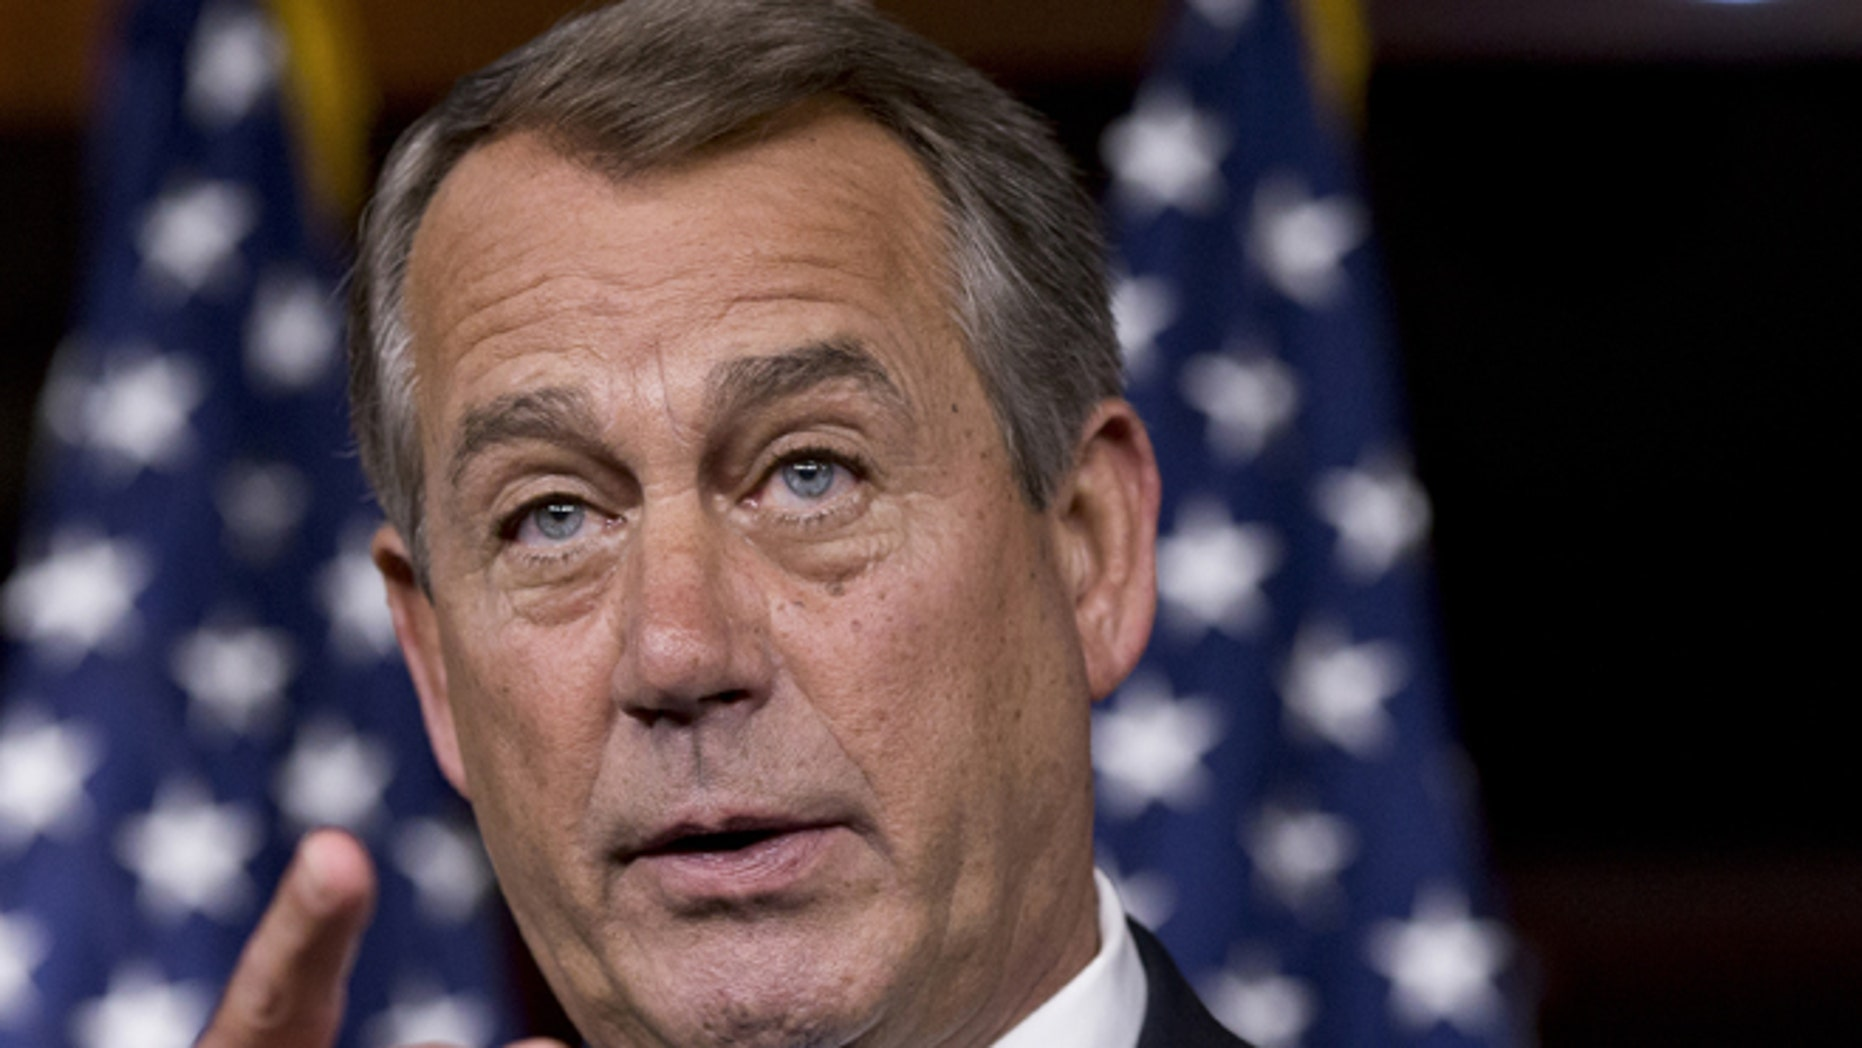 June 20, 2013. House Speaker John Boehner of Ohio speaks during a news conference on Capitol Hill in Washington. Republicans in the House are deeply divided over the immigration bill which passed June 27, 2013 in the Senate.